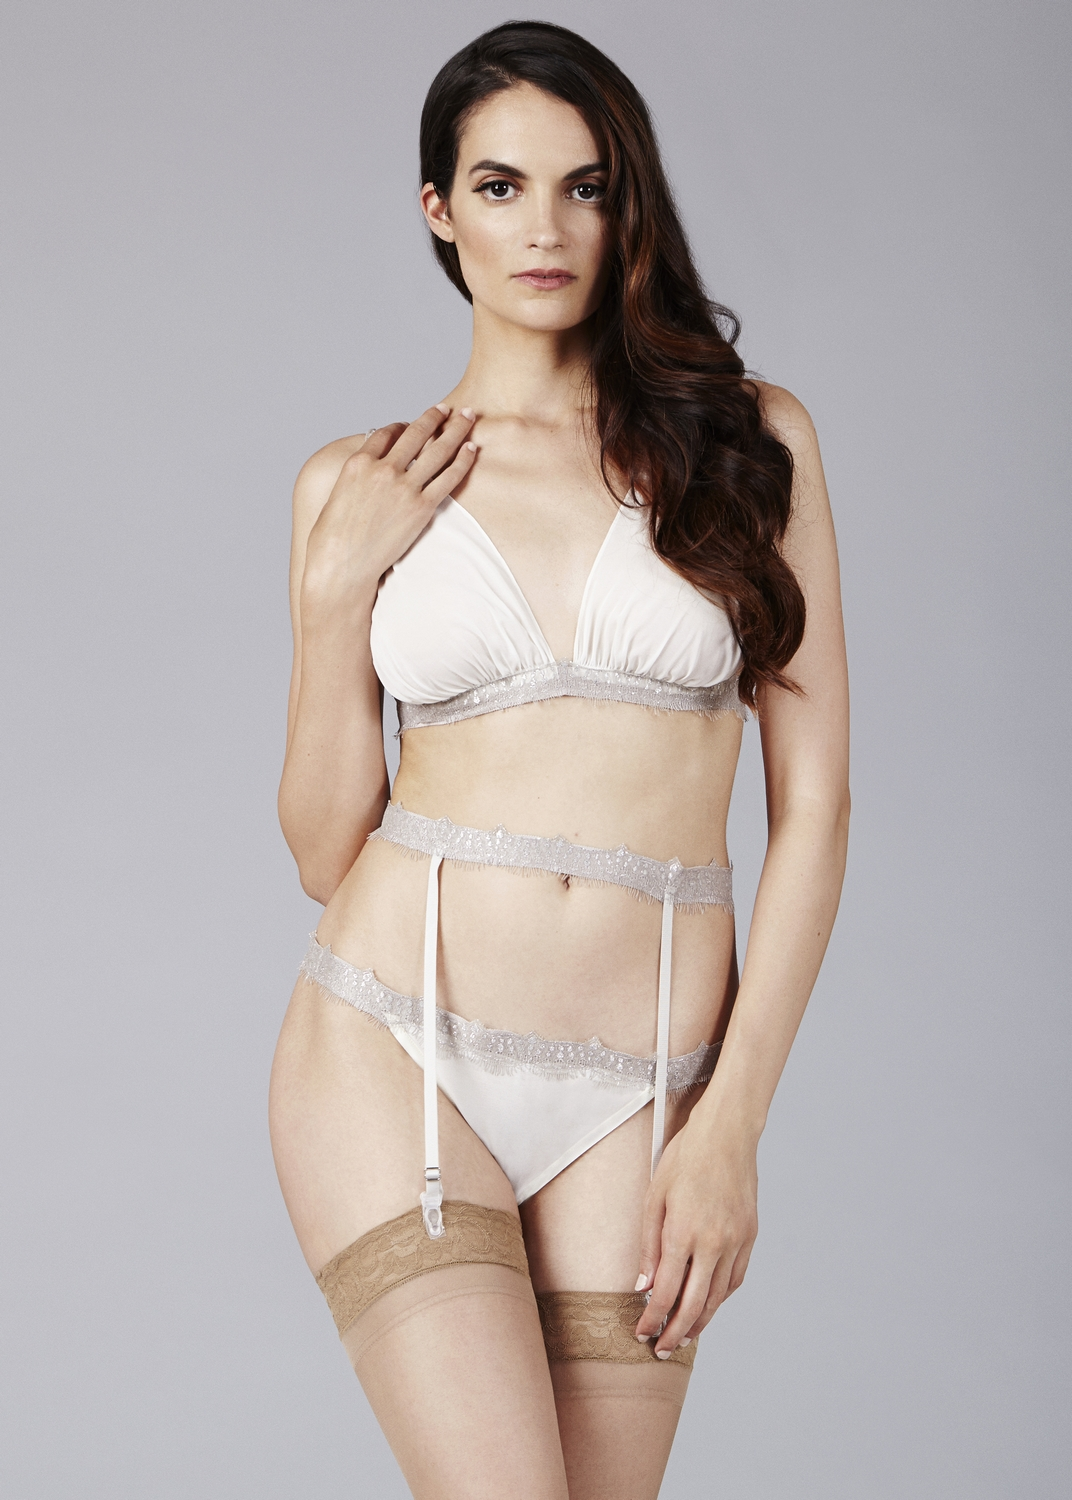 tn_Ashley Bralette + Cheeky in Ivory and Garter Belt in Platinum_The Giving Bride.jpg